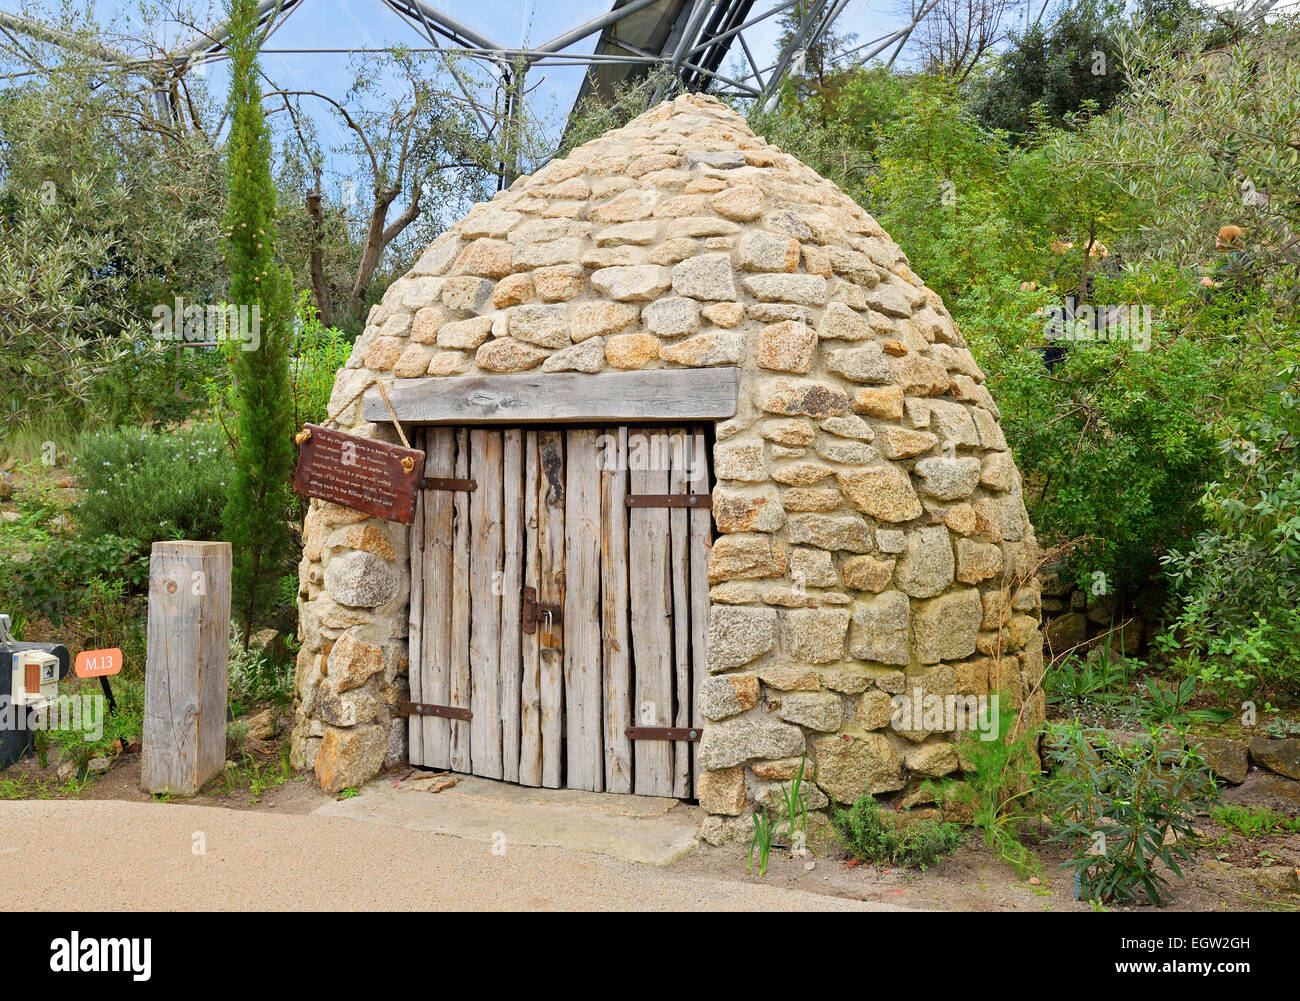 A traditional french Borrie ( a stone hut built to shelter shepherds ) exhibit at the Eden Project in Cornwall, - Stock Image